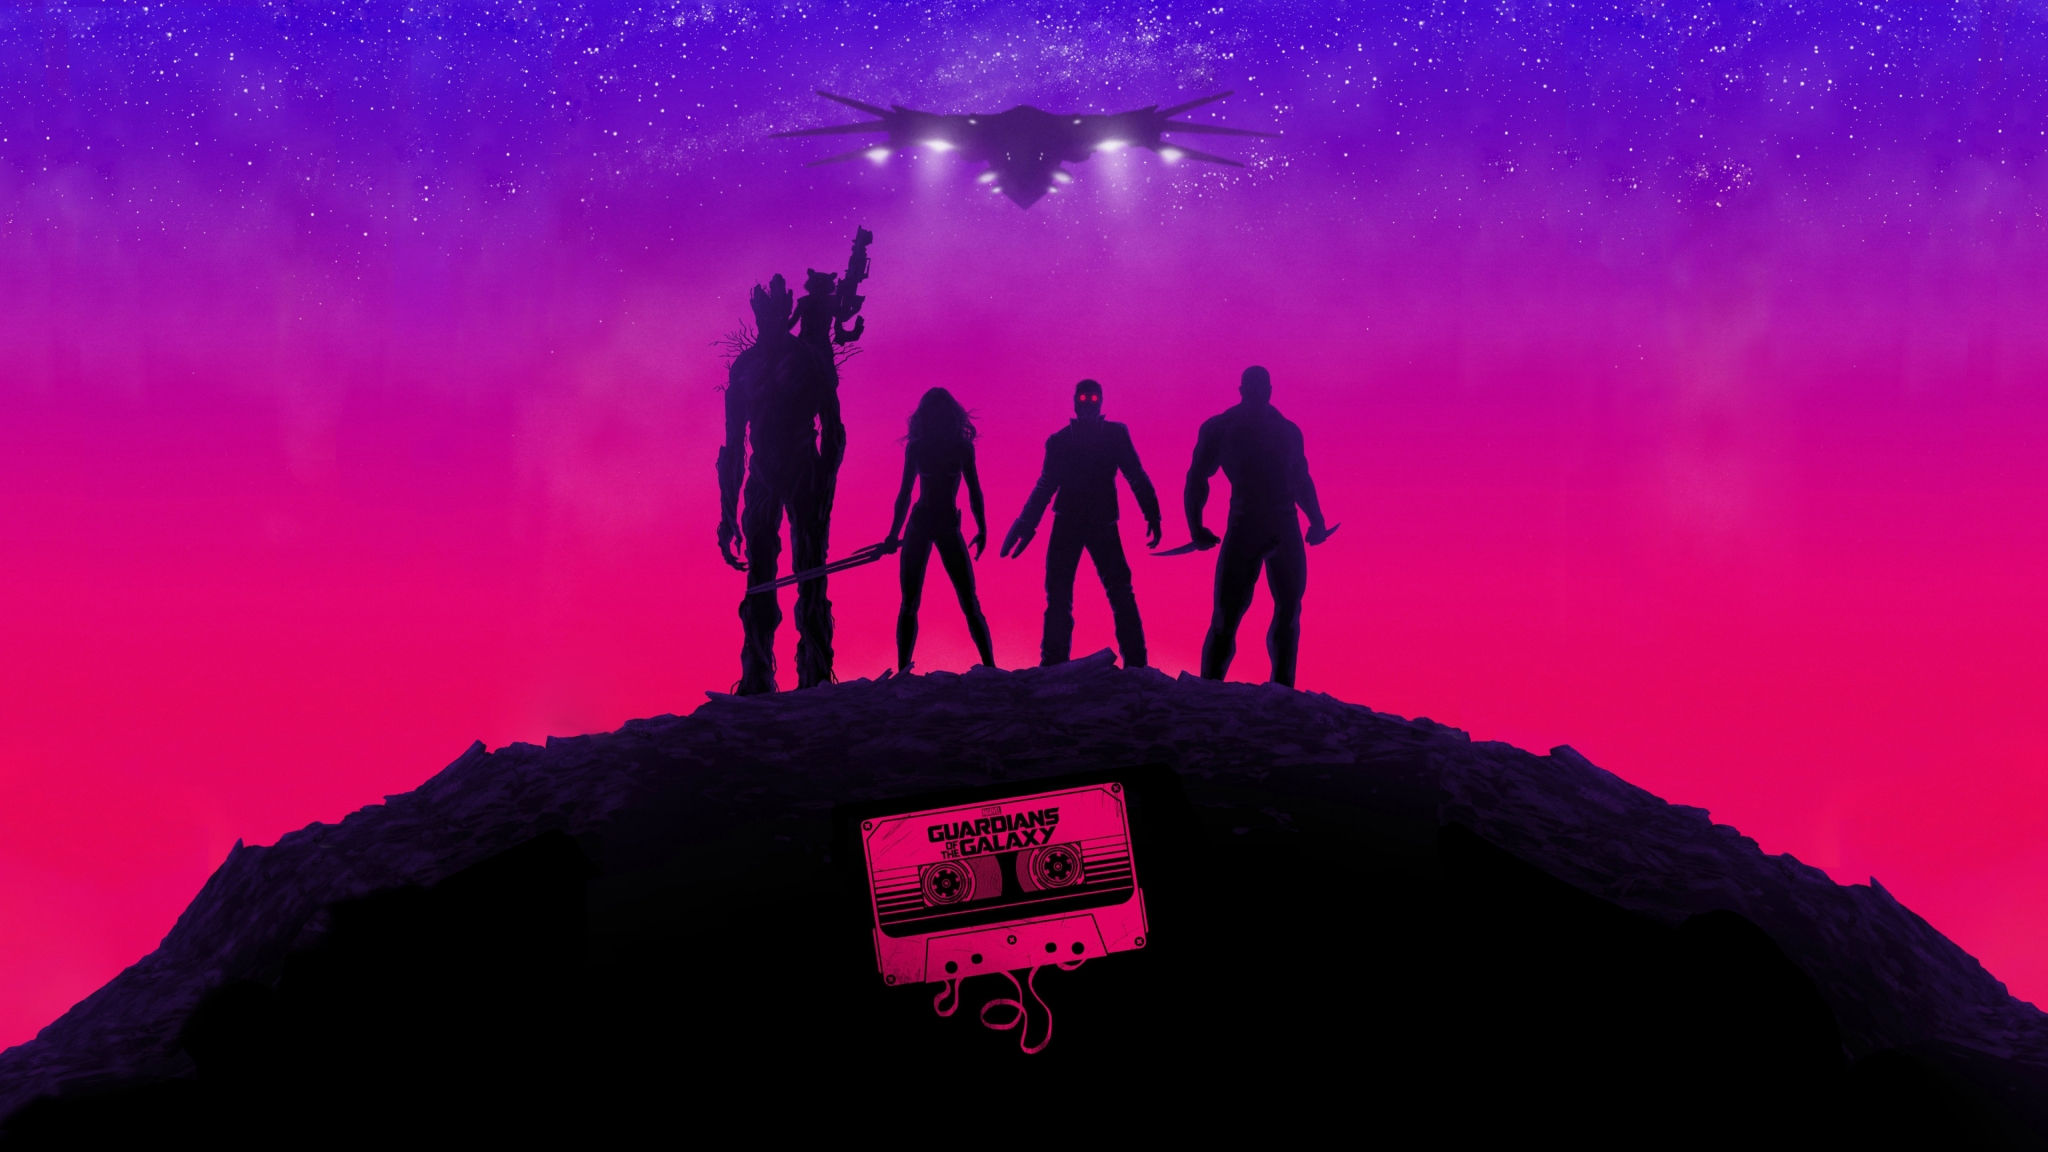 Guardians Of The Galaxy 2 Hd Wallpapers Free Download